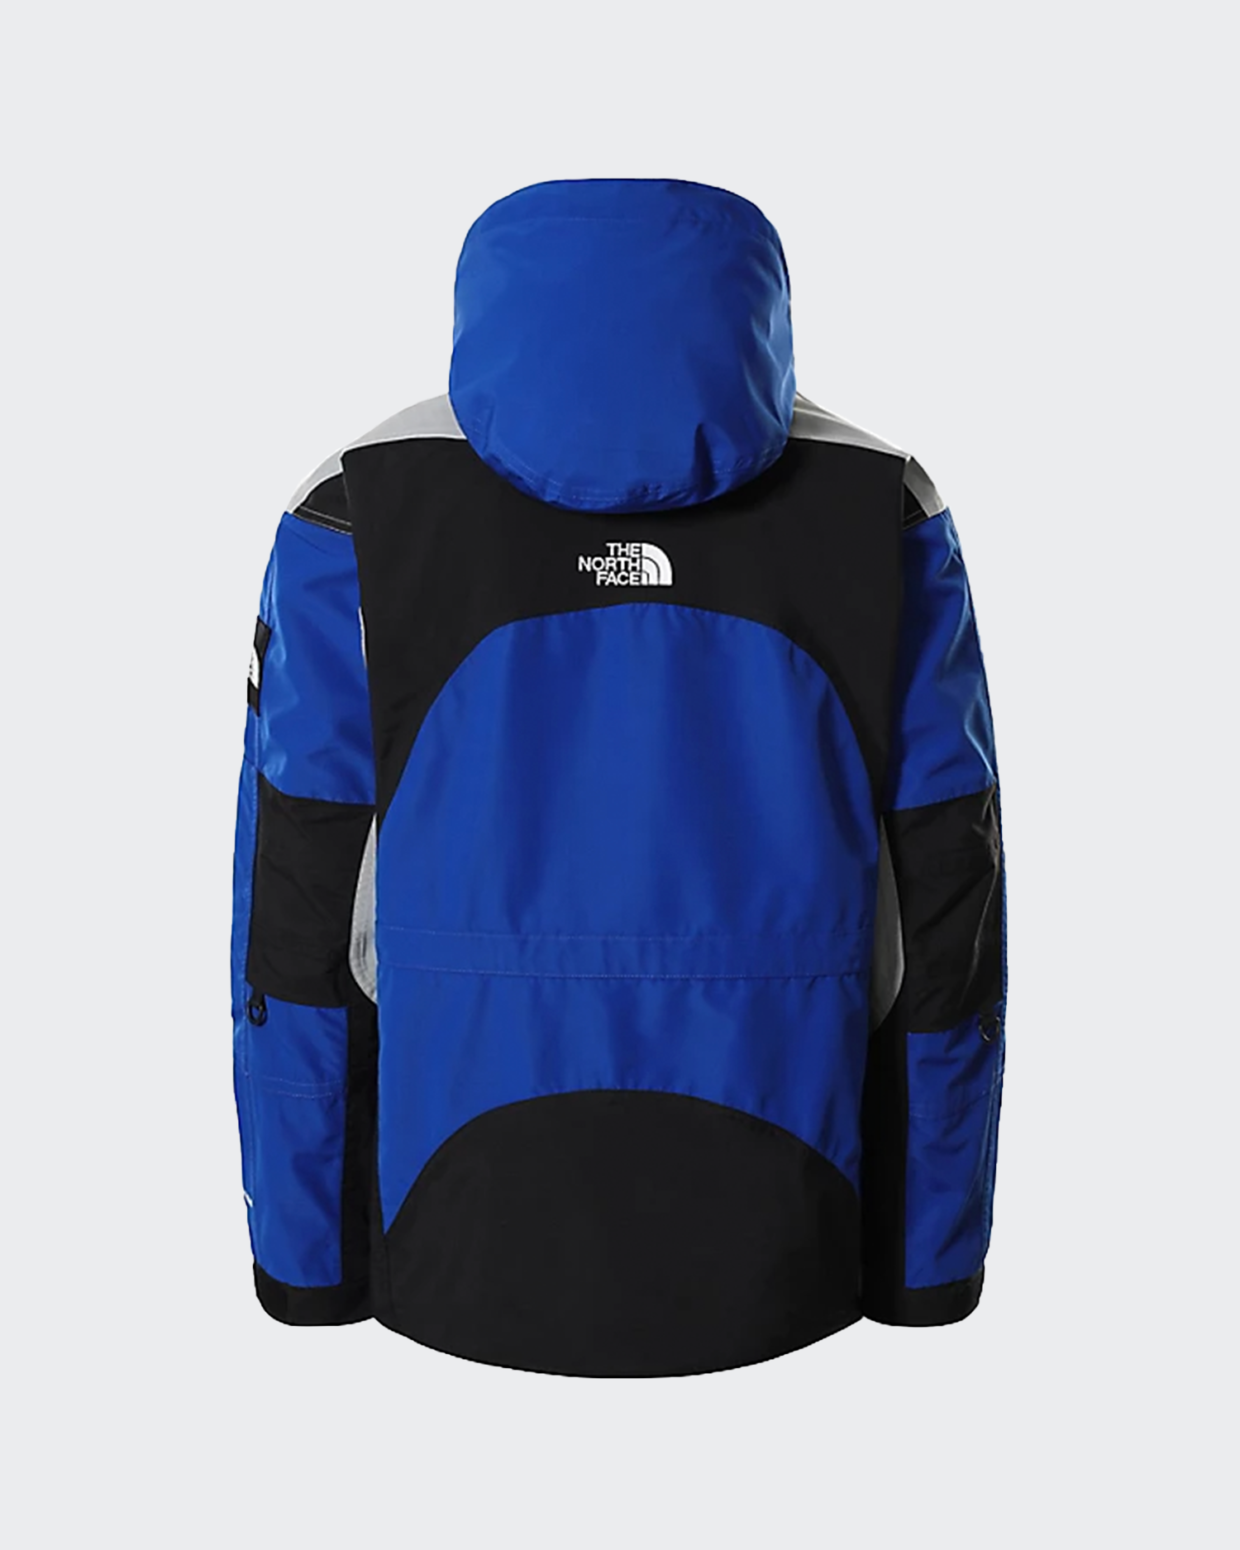 The North Face Search & Rescue Dryvent